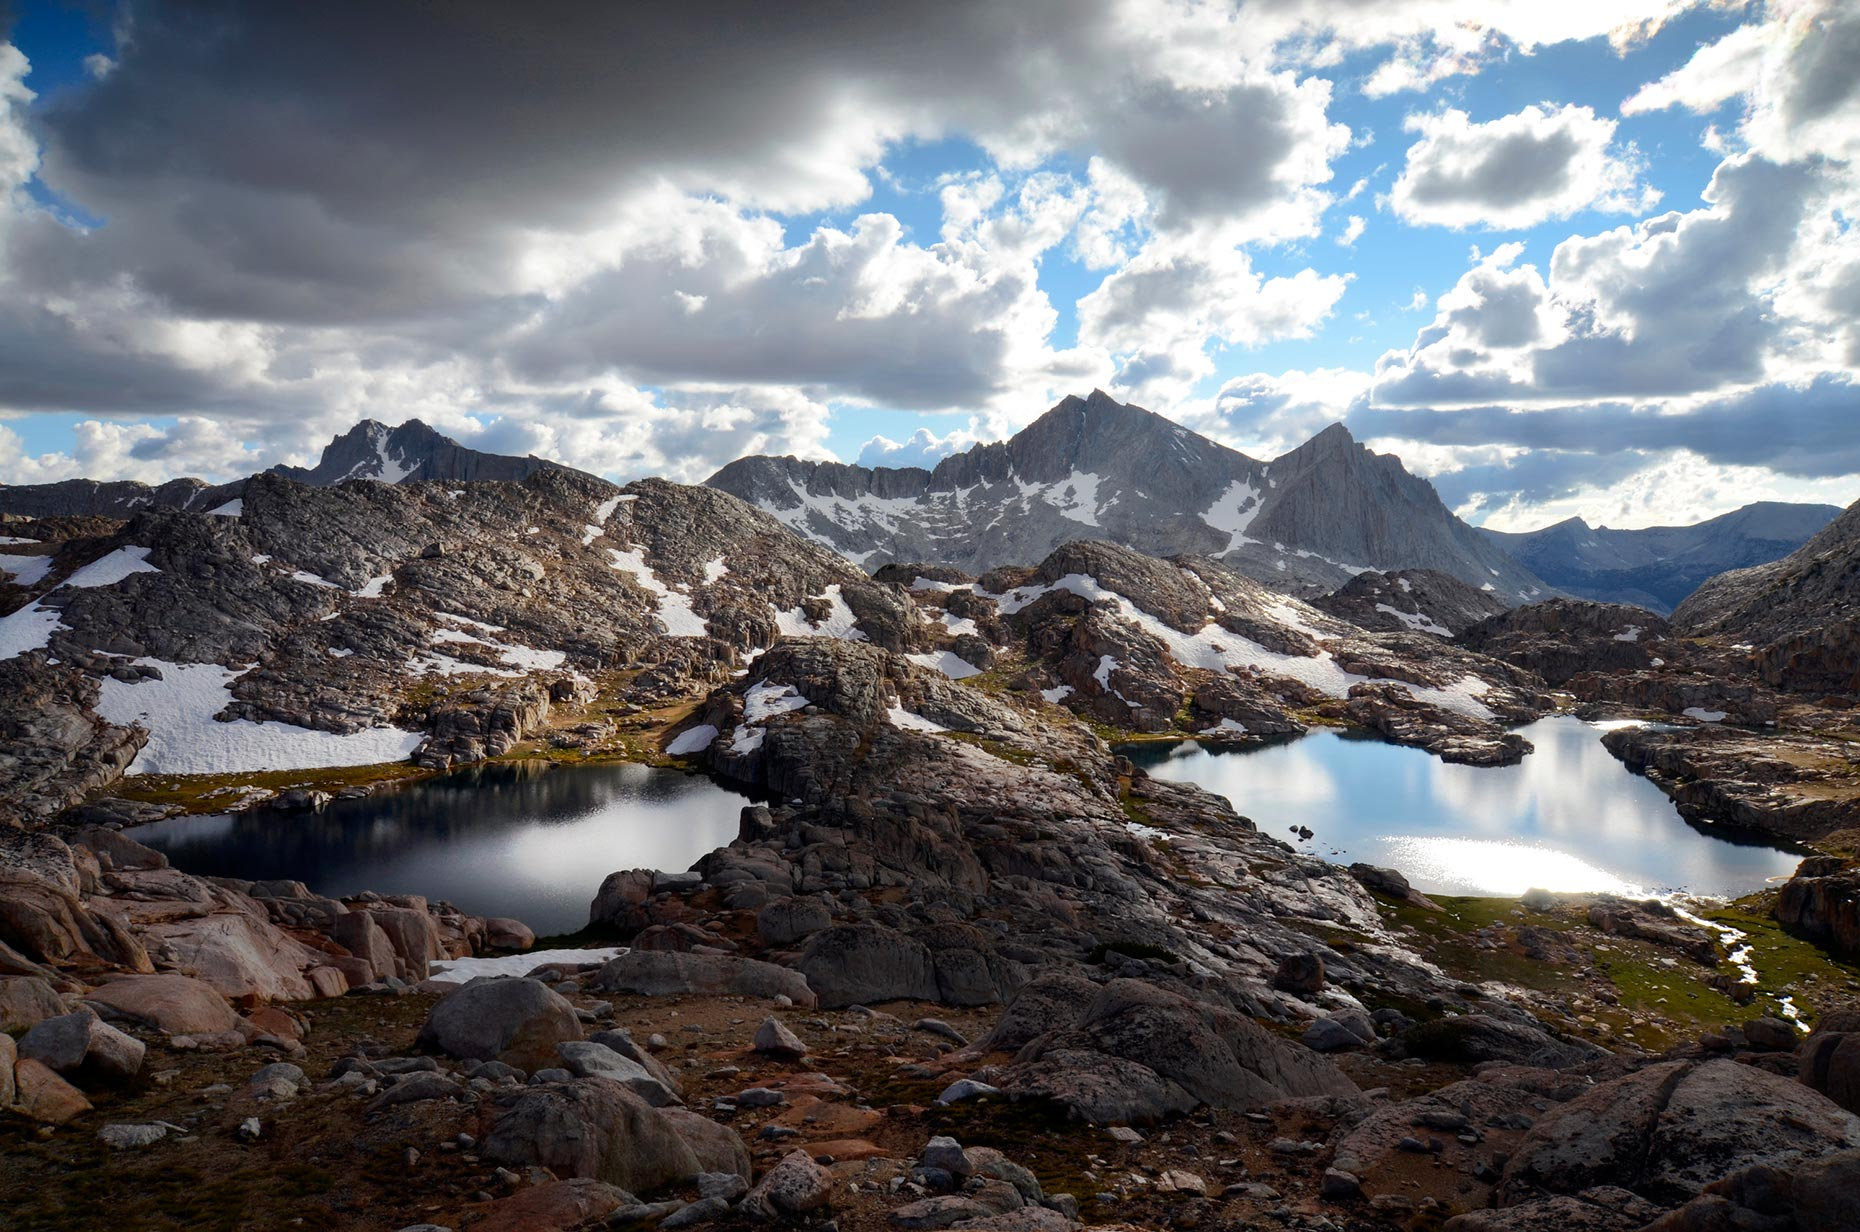 Bear Lakes Basin, High Sierra Nevada, California